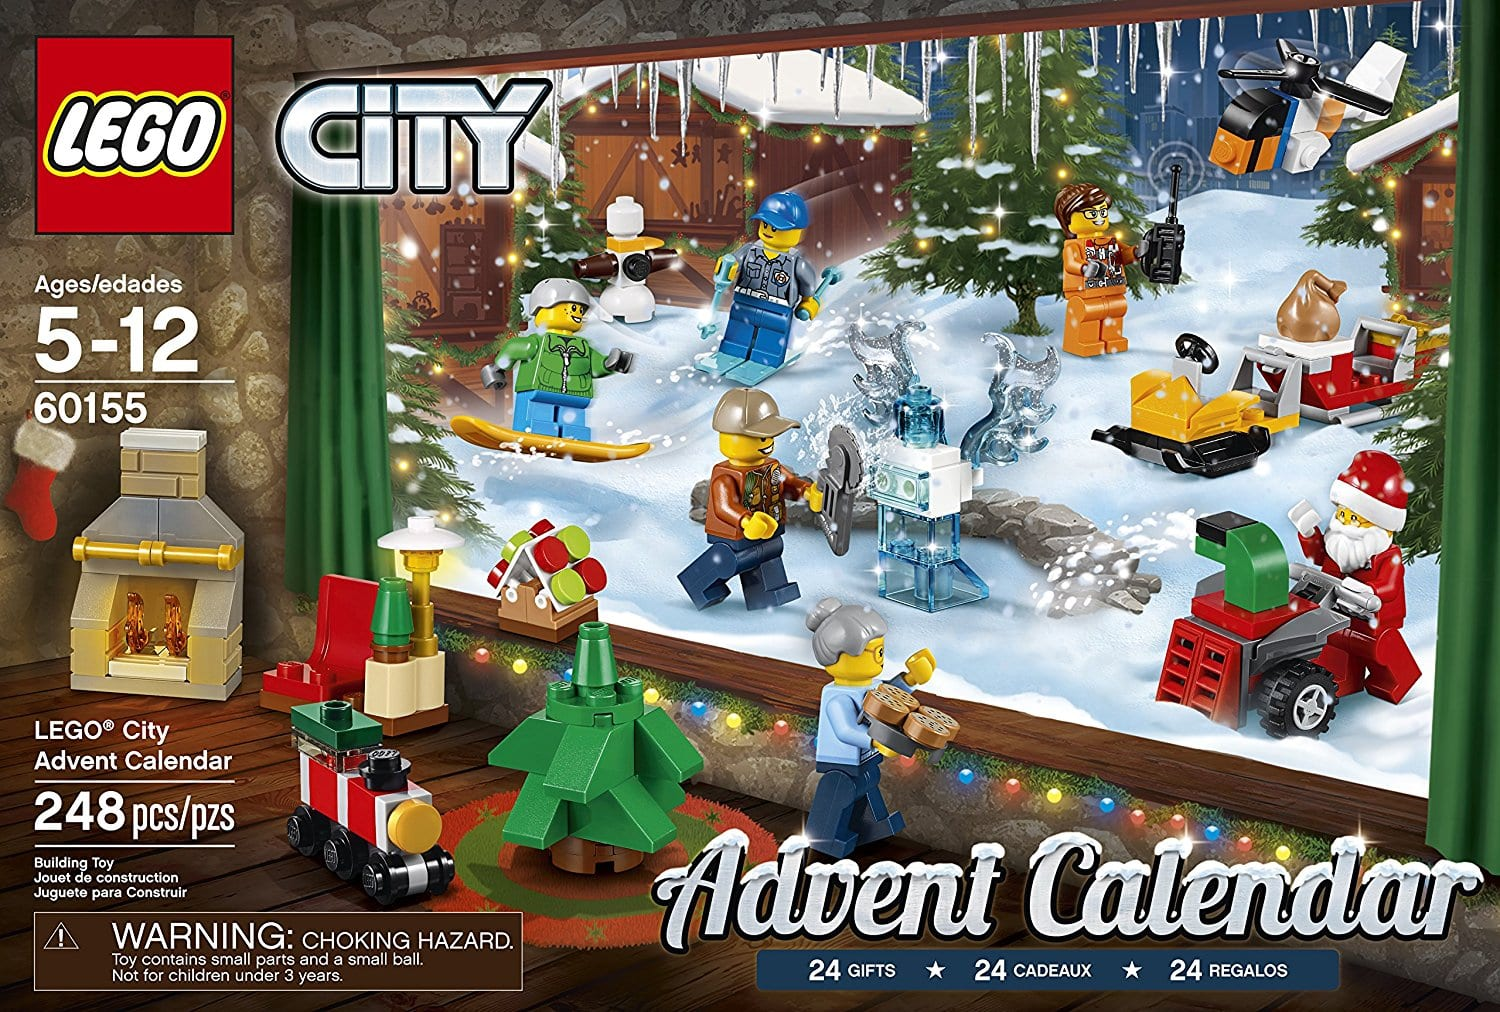 lego city advent calendar. Black Bedroom Furniture Sets. Home Design Ideas